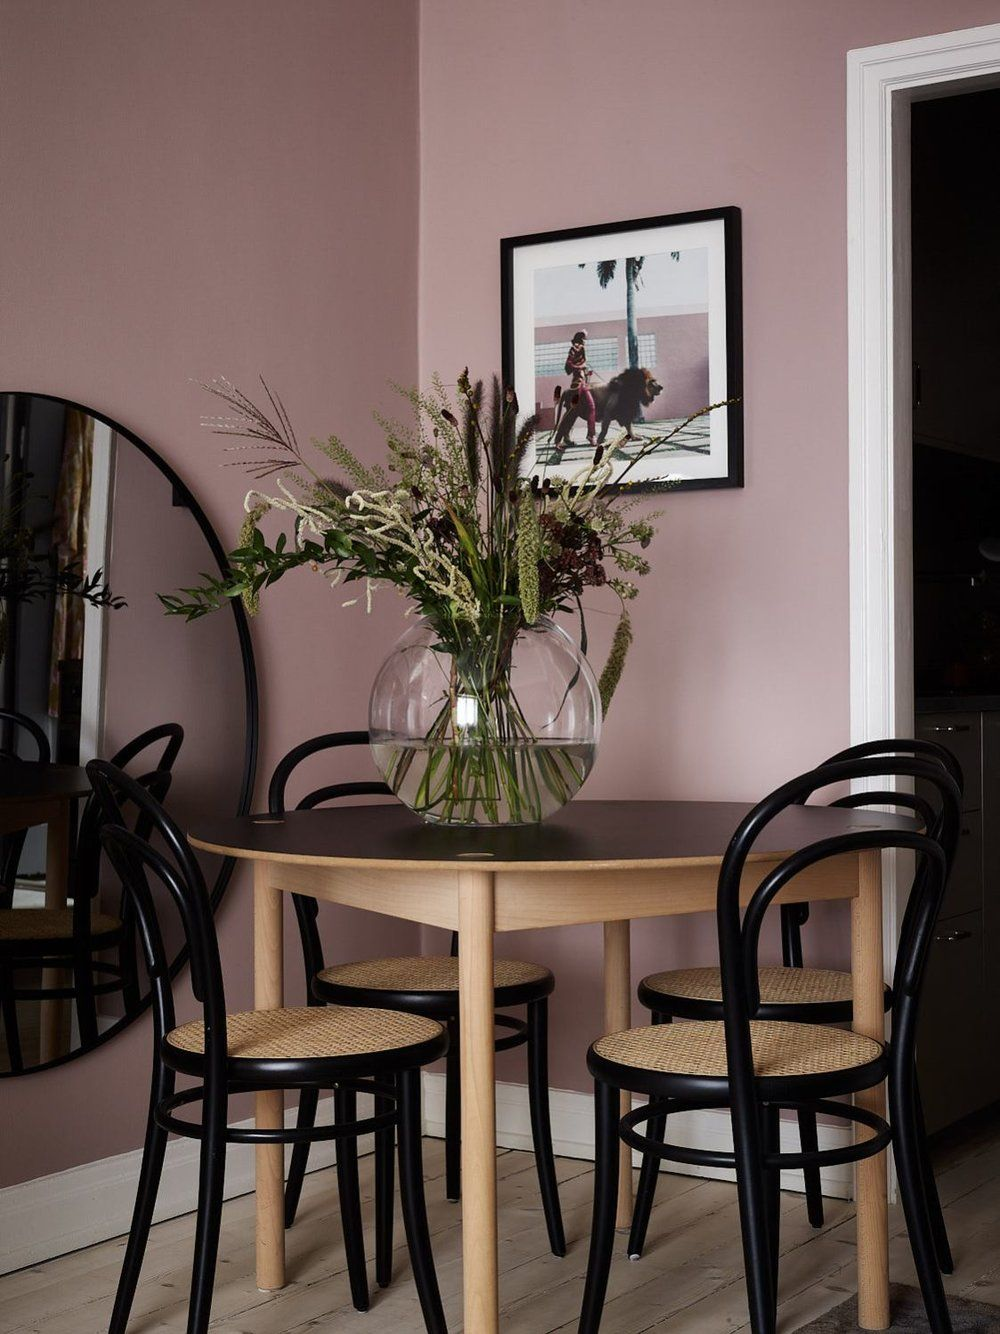 Using Treron, One Of The New 9 Farrow & Ball Colours, In My Home. images